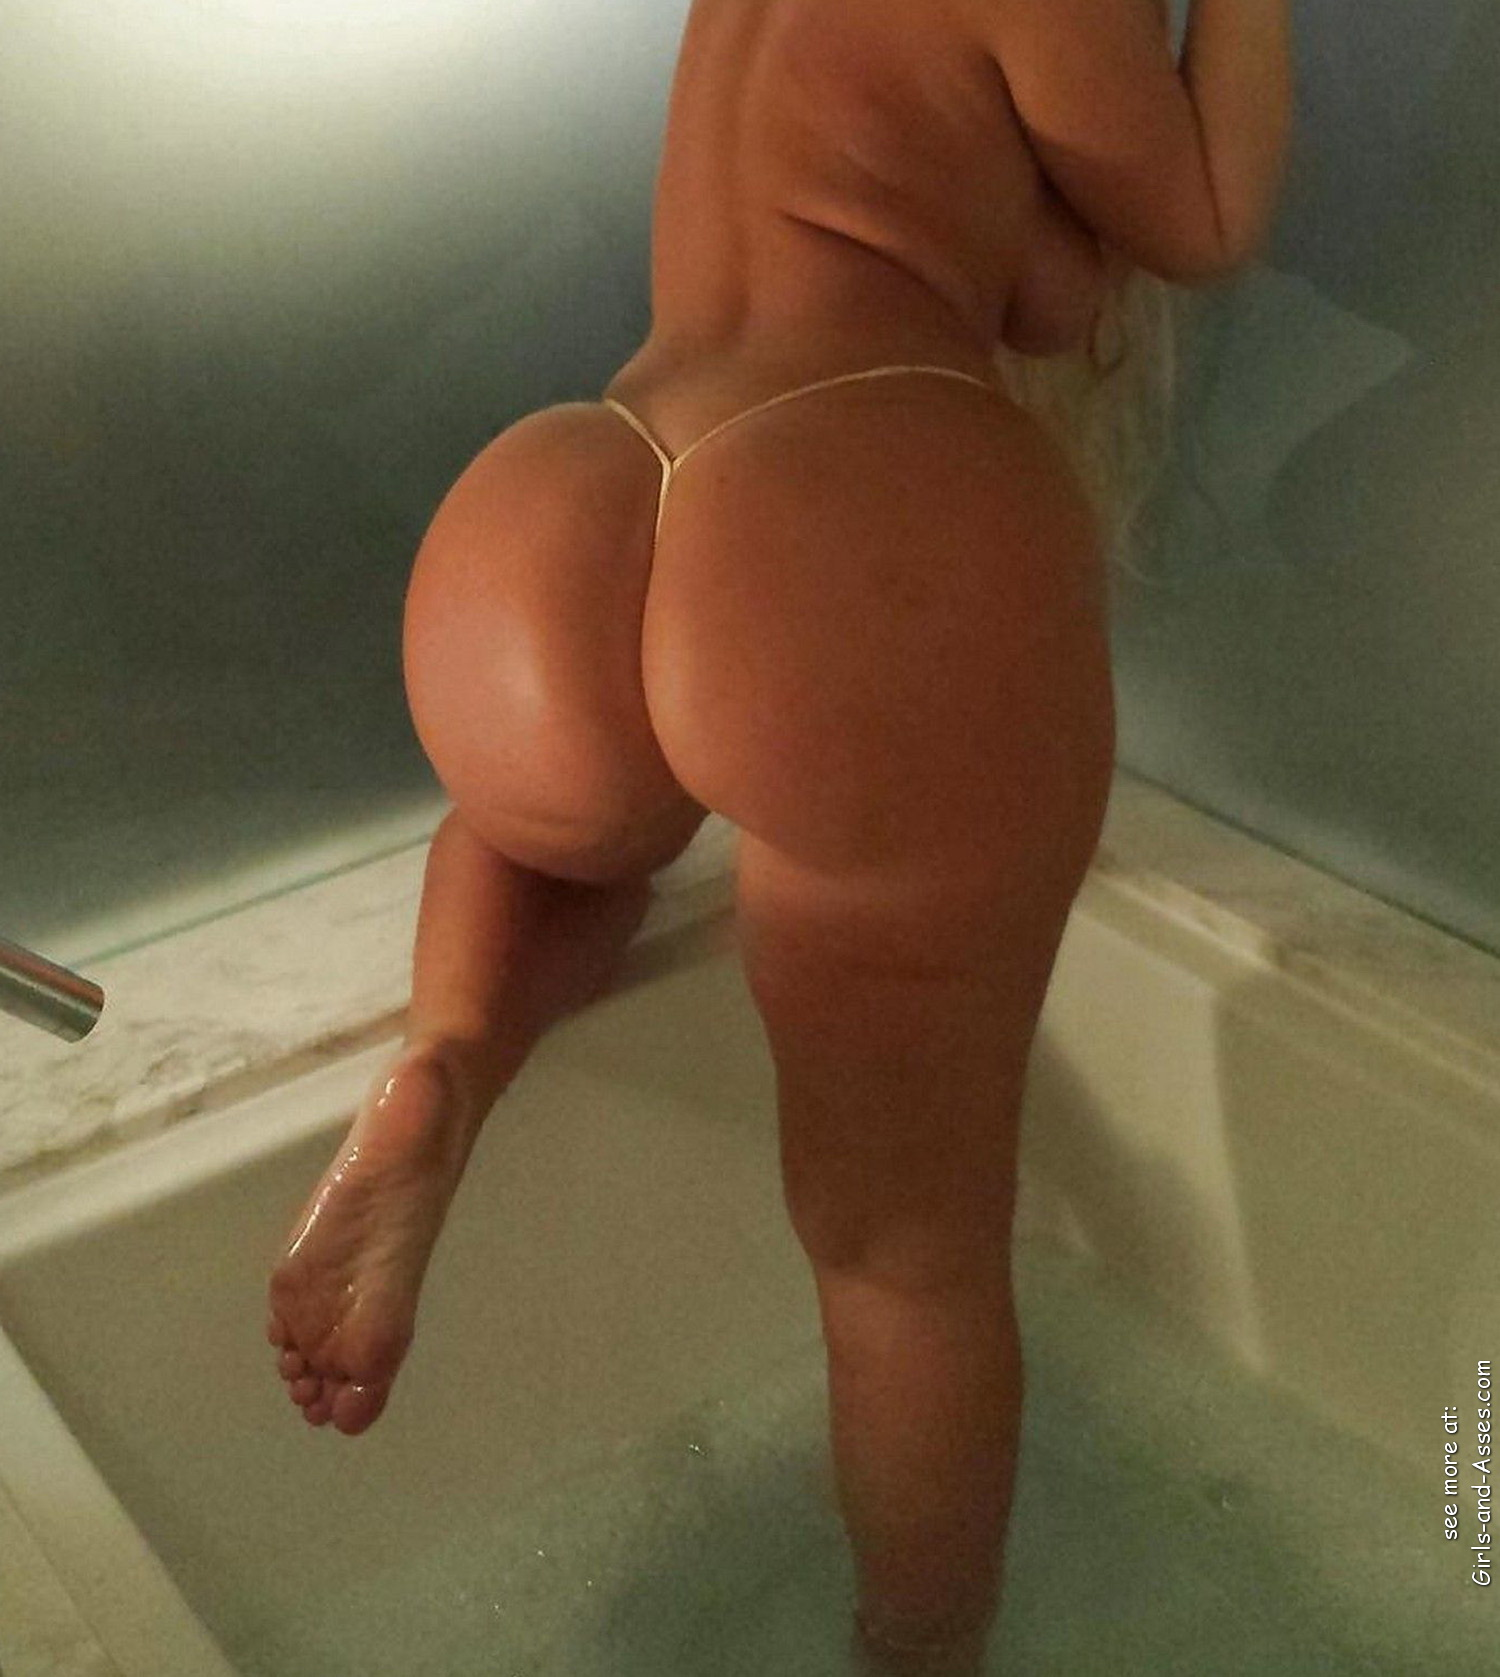 nude girl with massive ass in the bathtub photography 00247